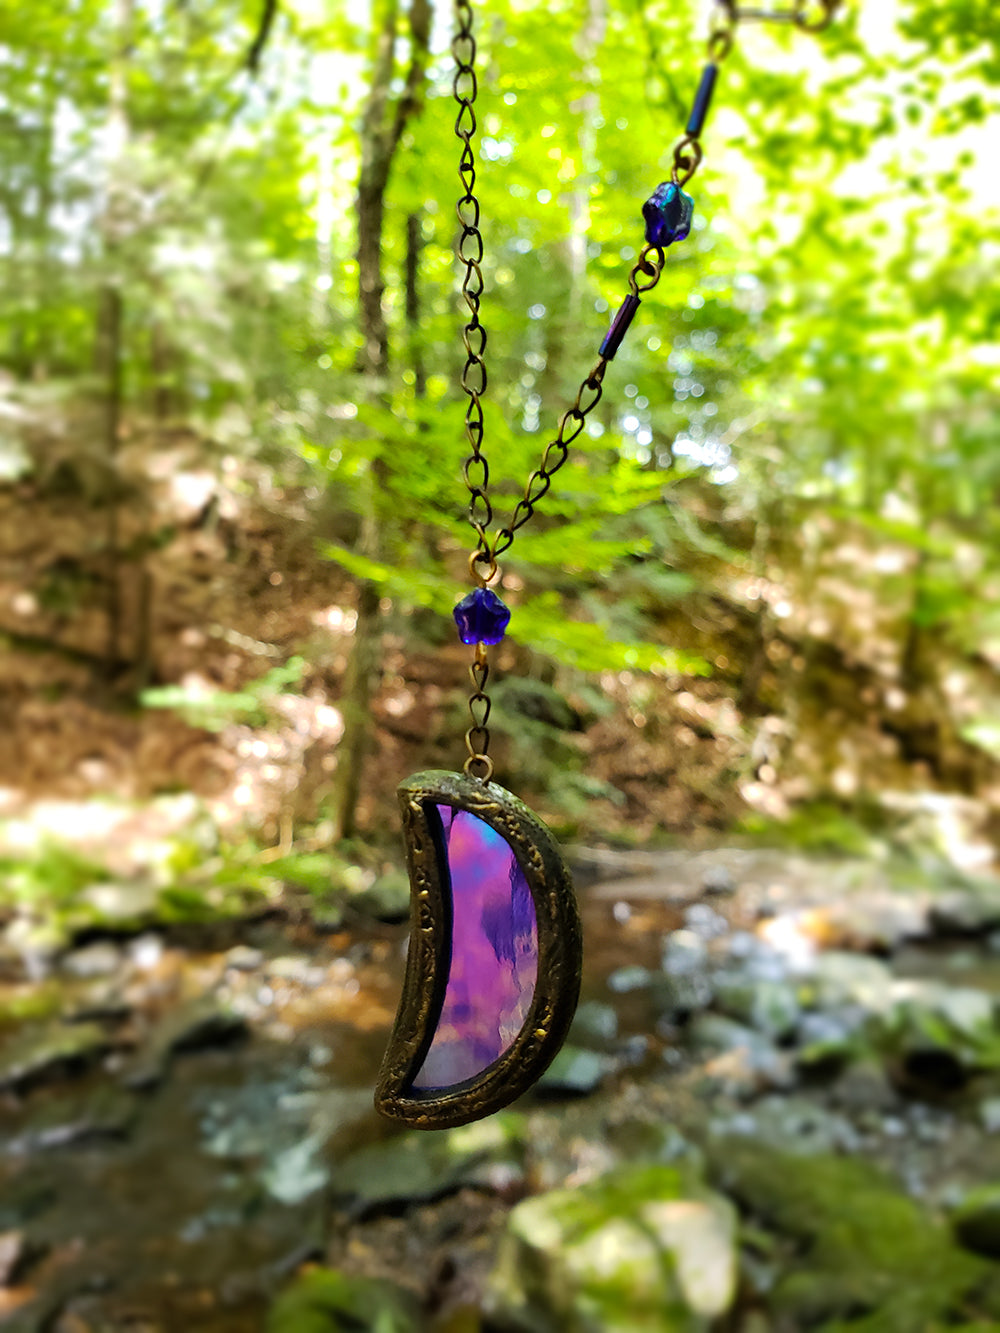 caelestis ignis ~ Iridescent Stained Glass Amulet